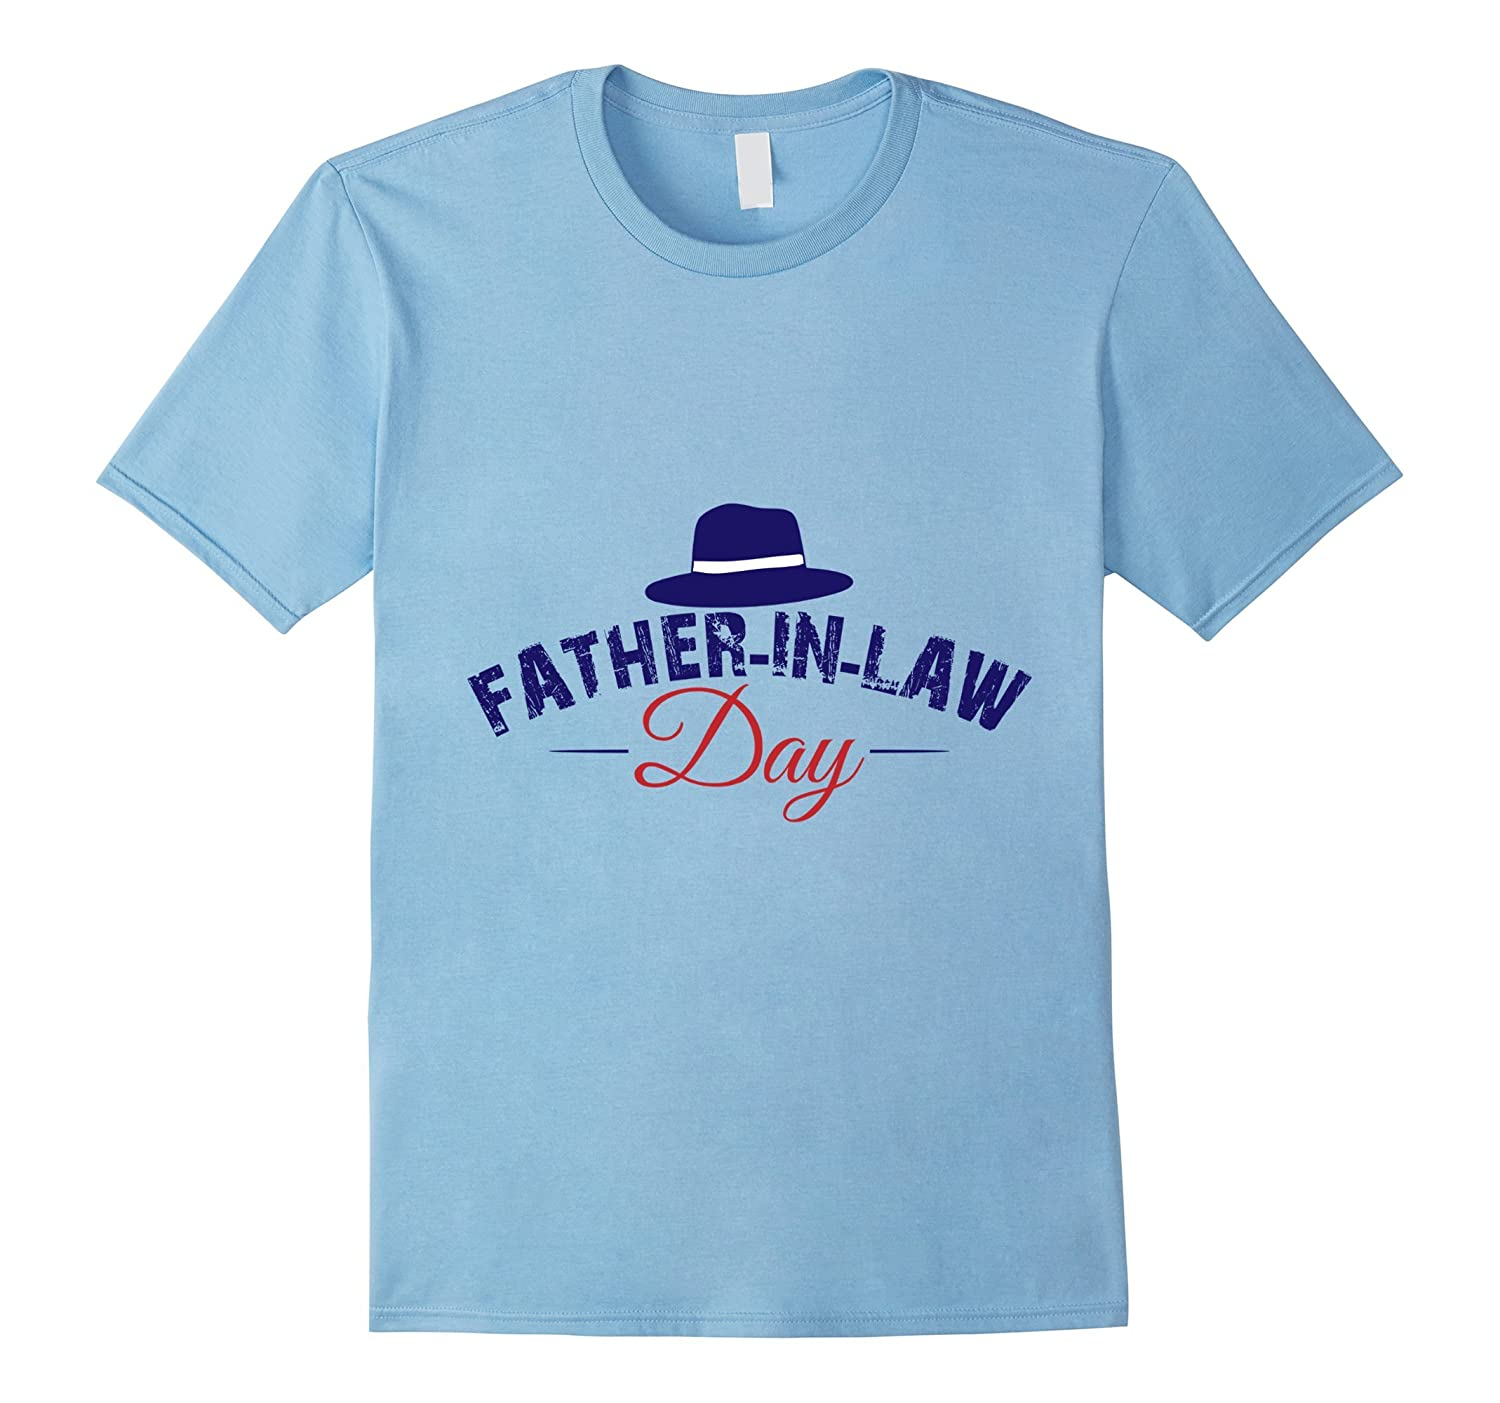 30th July - Father-in-Law Day Shirt-BN